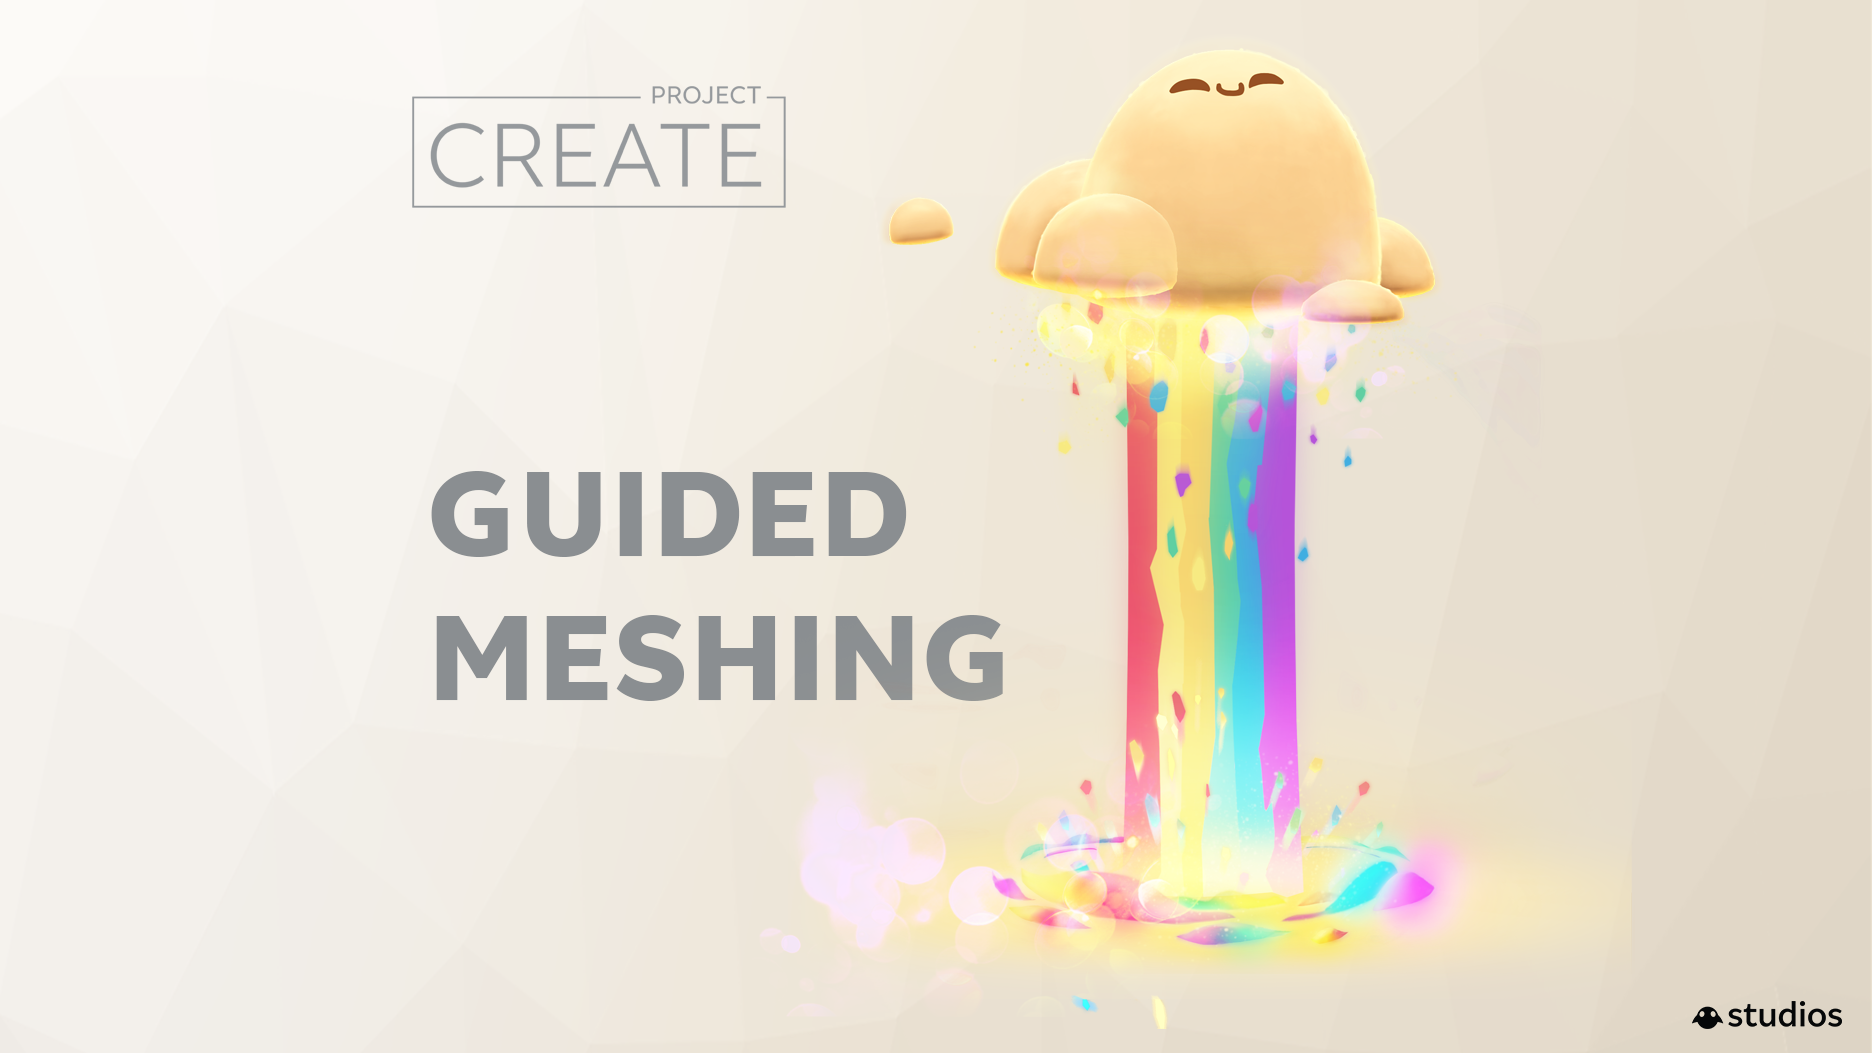 Guided Meshing in Create on Magic Leap One